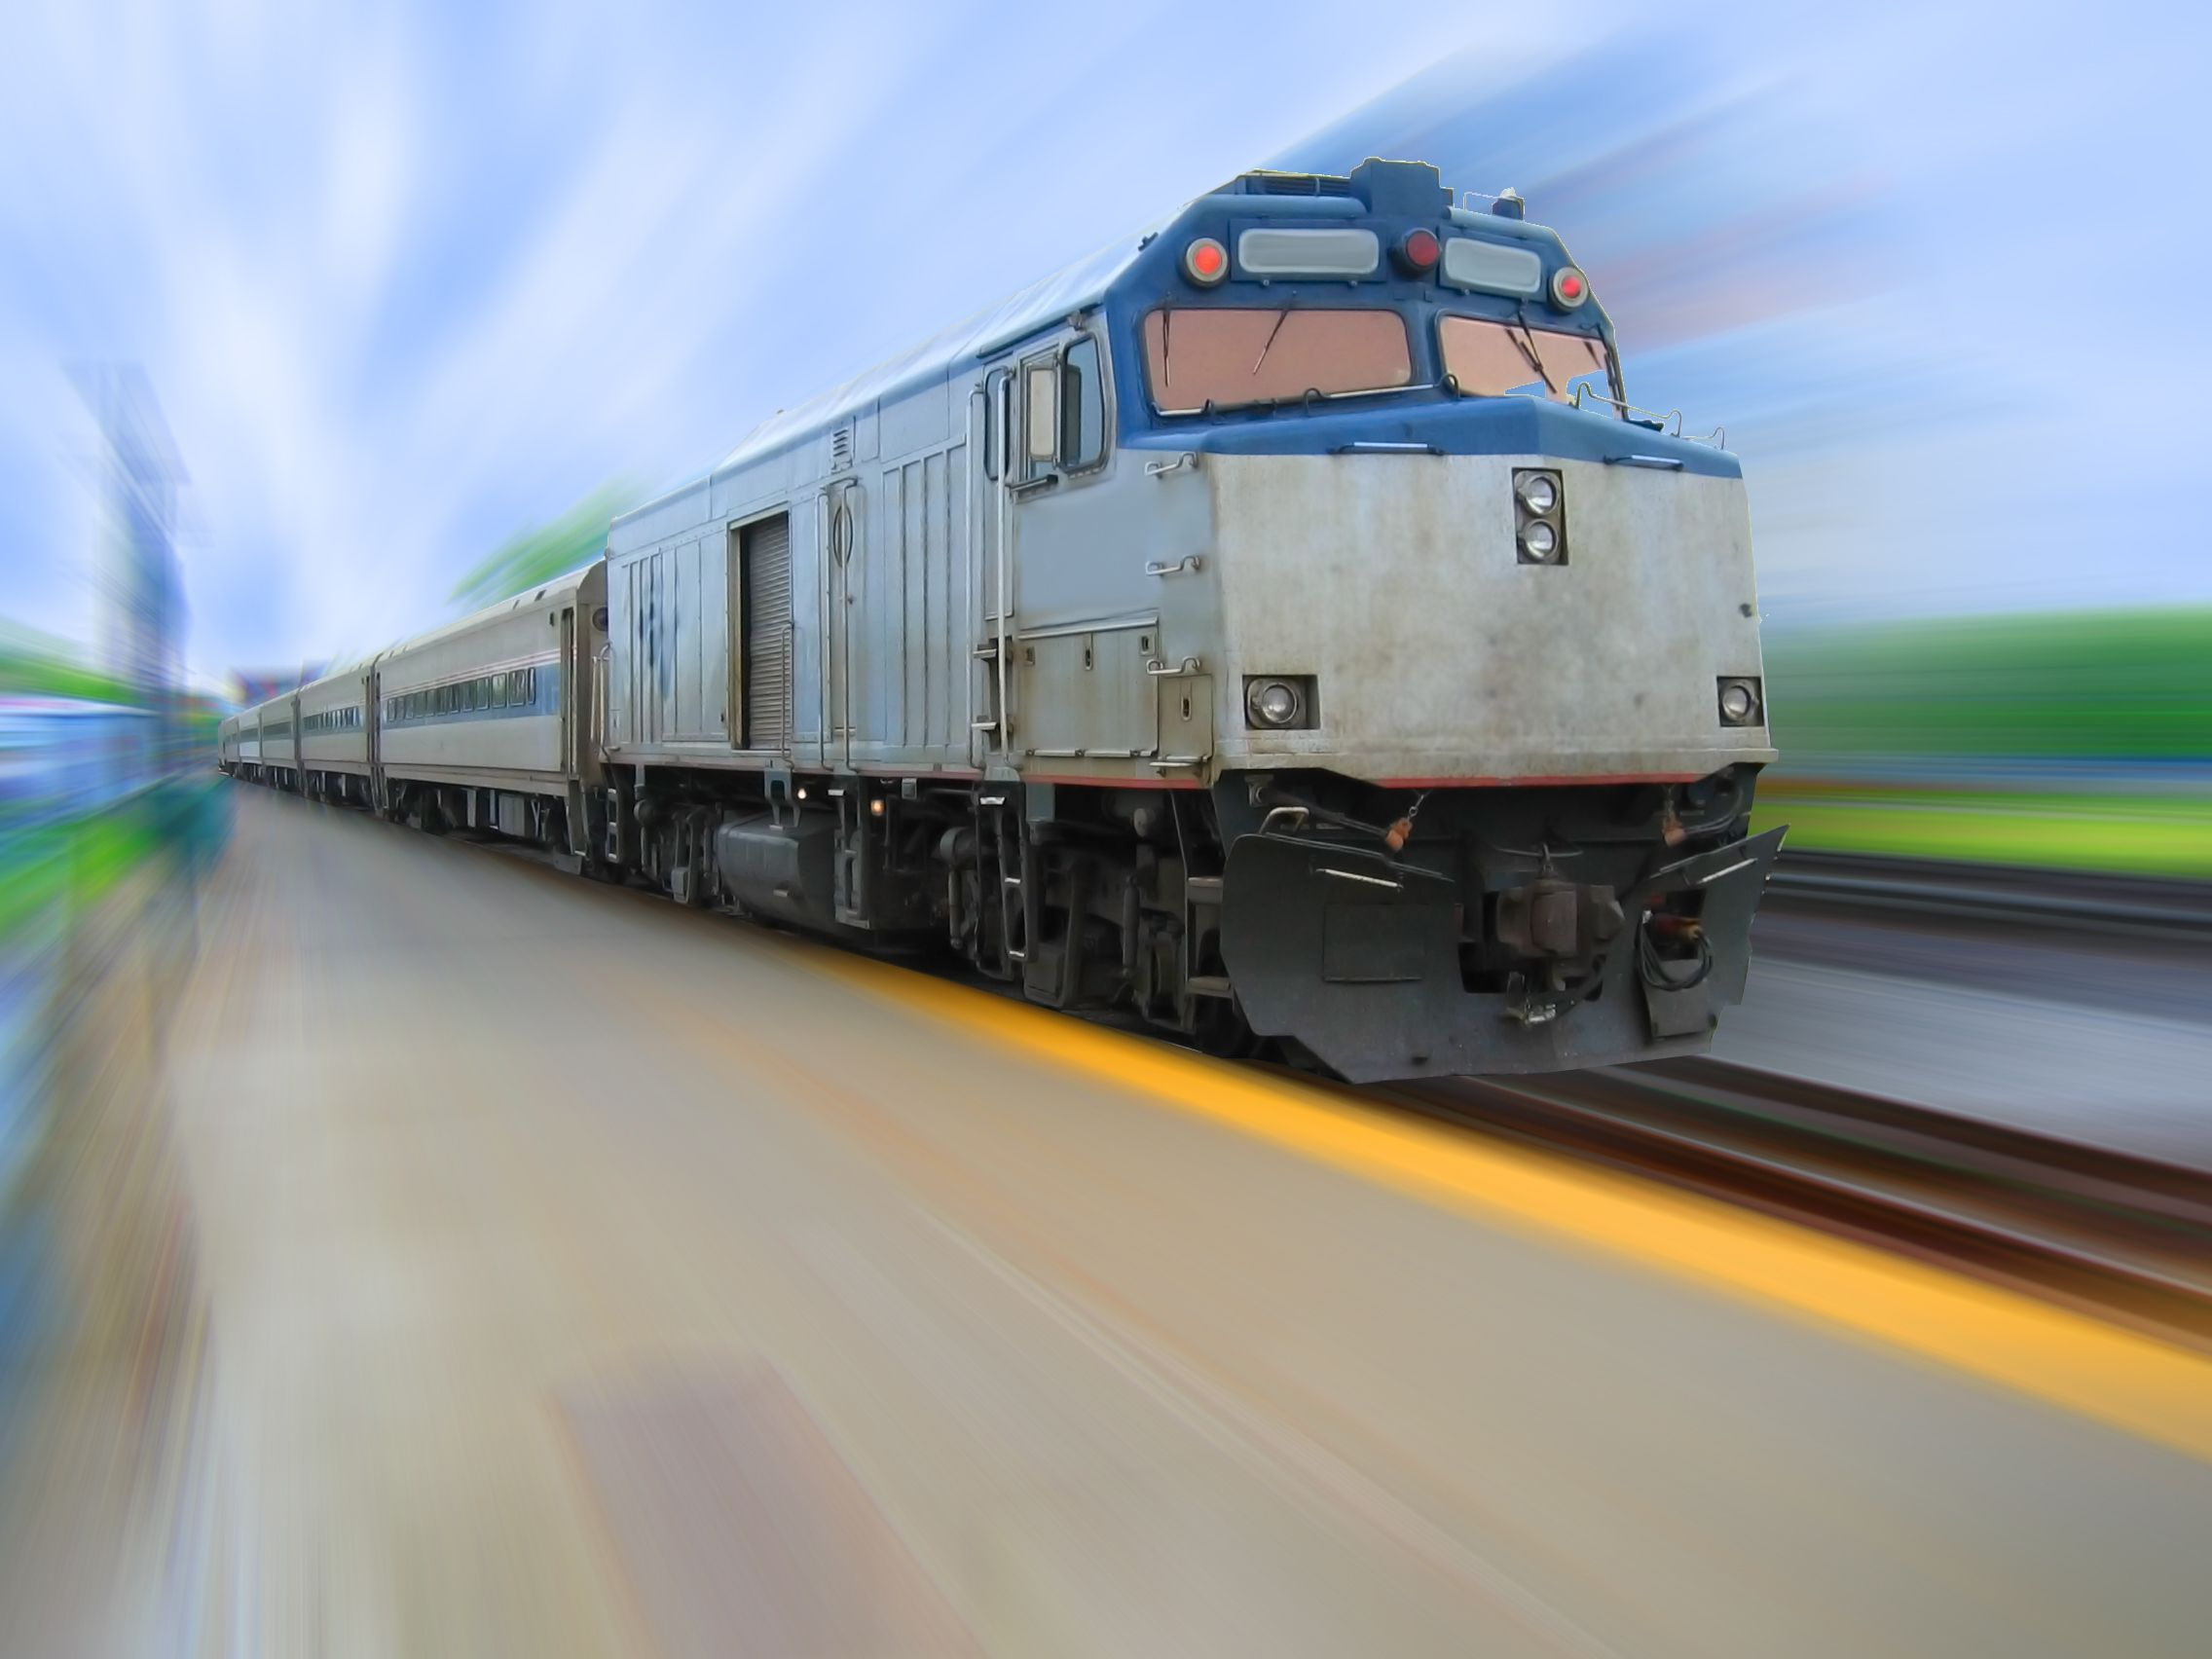 Speeding amtrak train